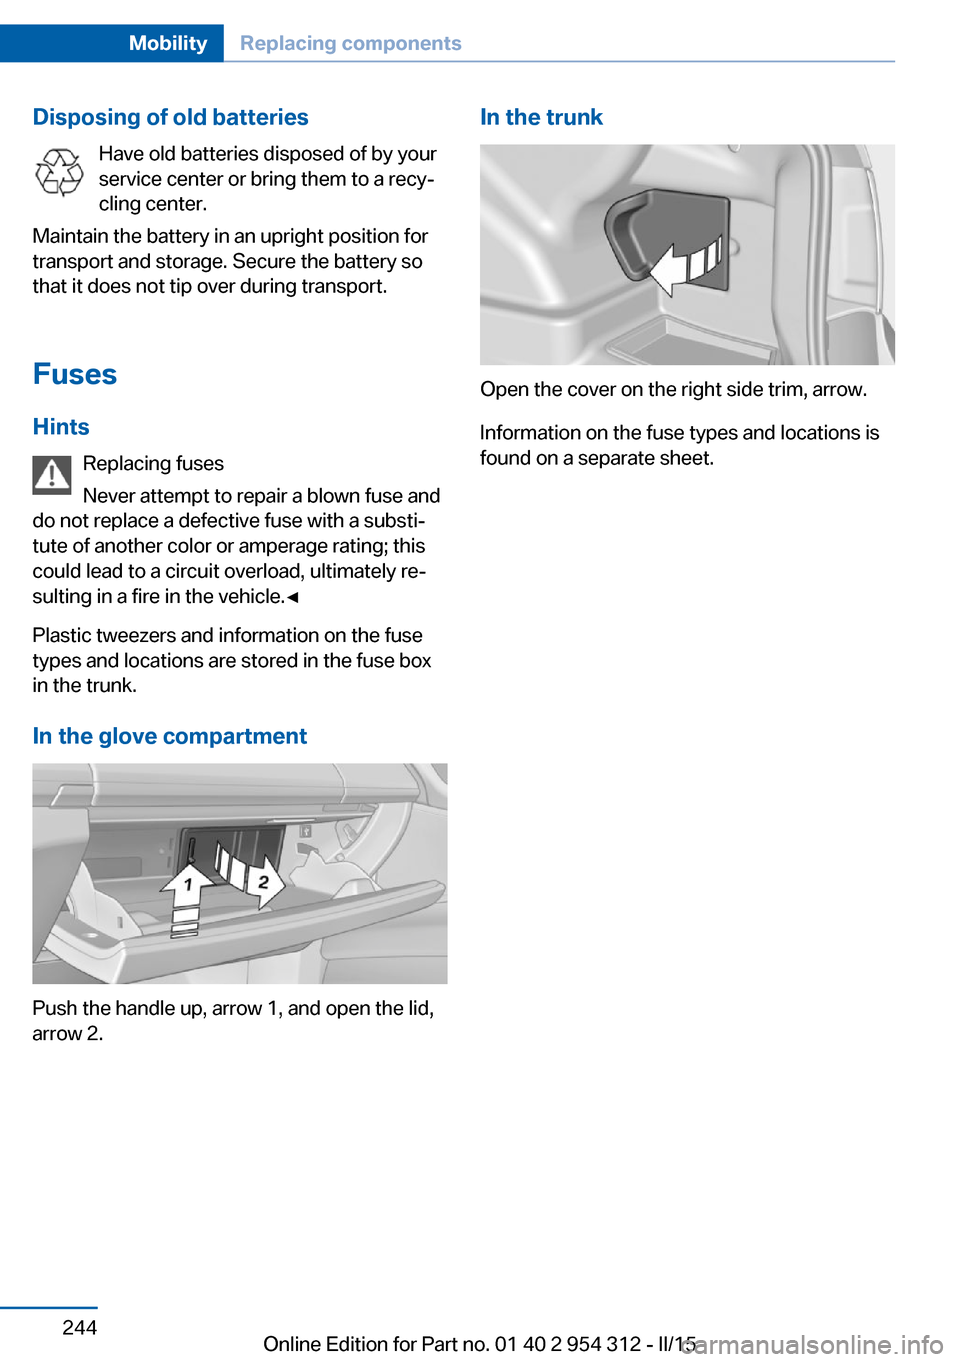 Bmw 5 Series 2015 F10 Owners Manual Fuse Box Page 248